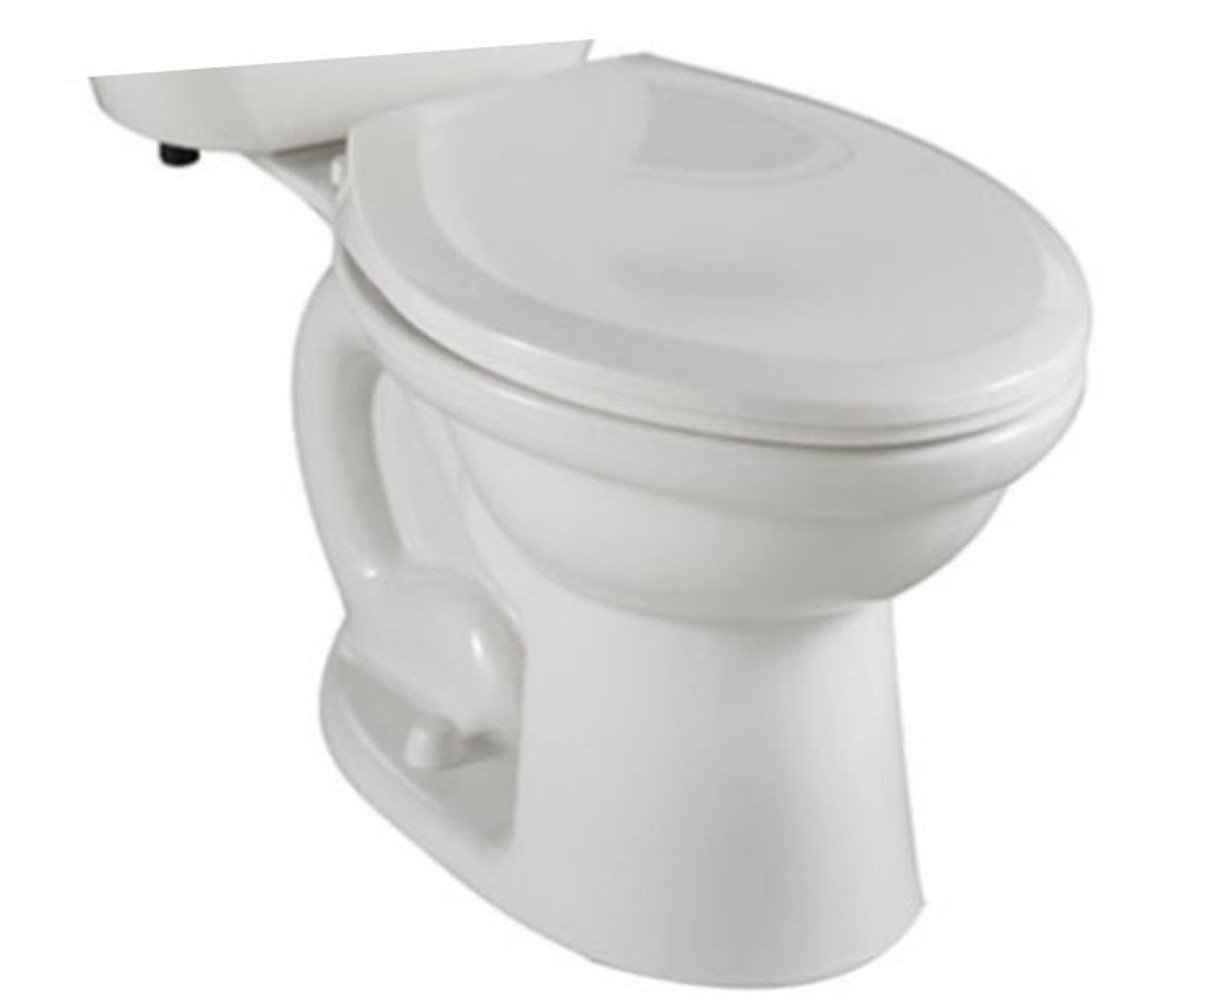 American Standard 3189.016.020 Colony FitRight Elongated Toilet Bowl, White (Bowl Only)